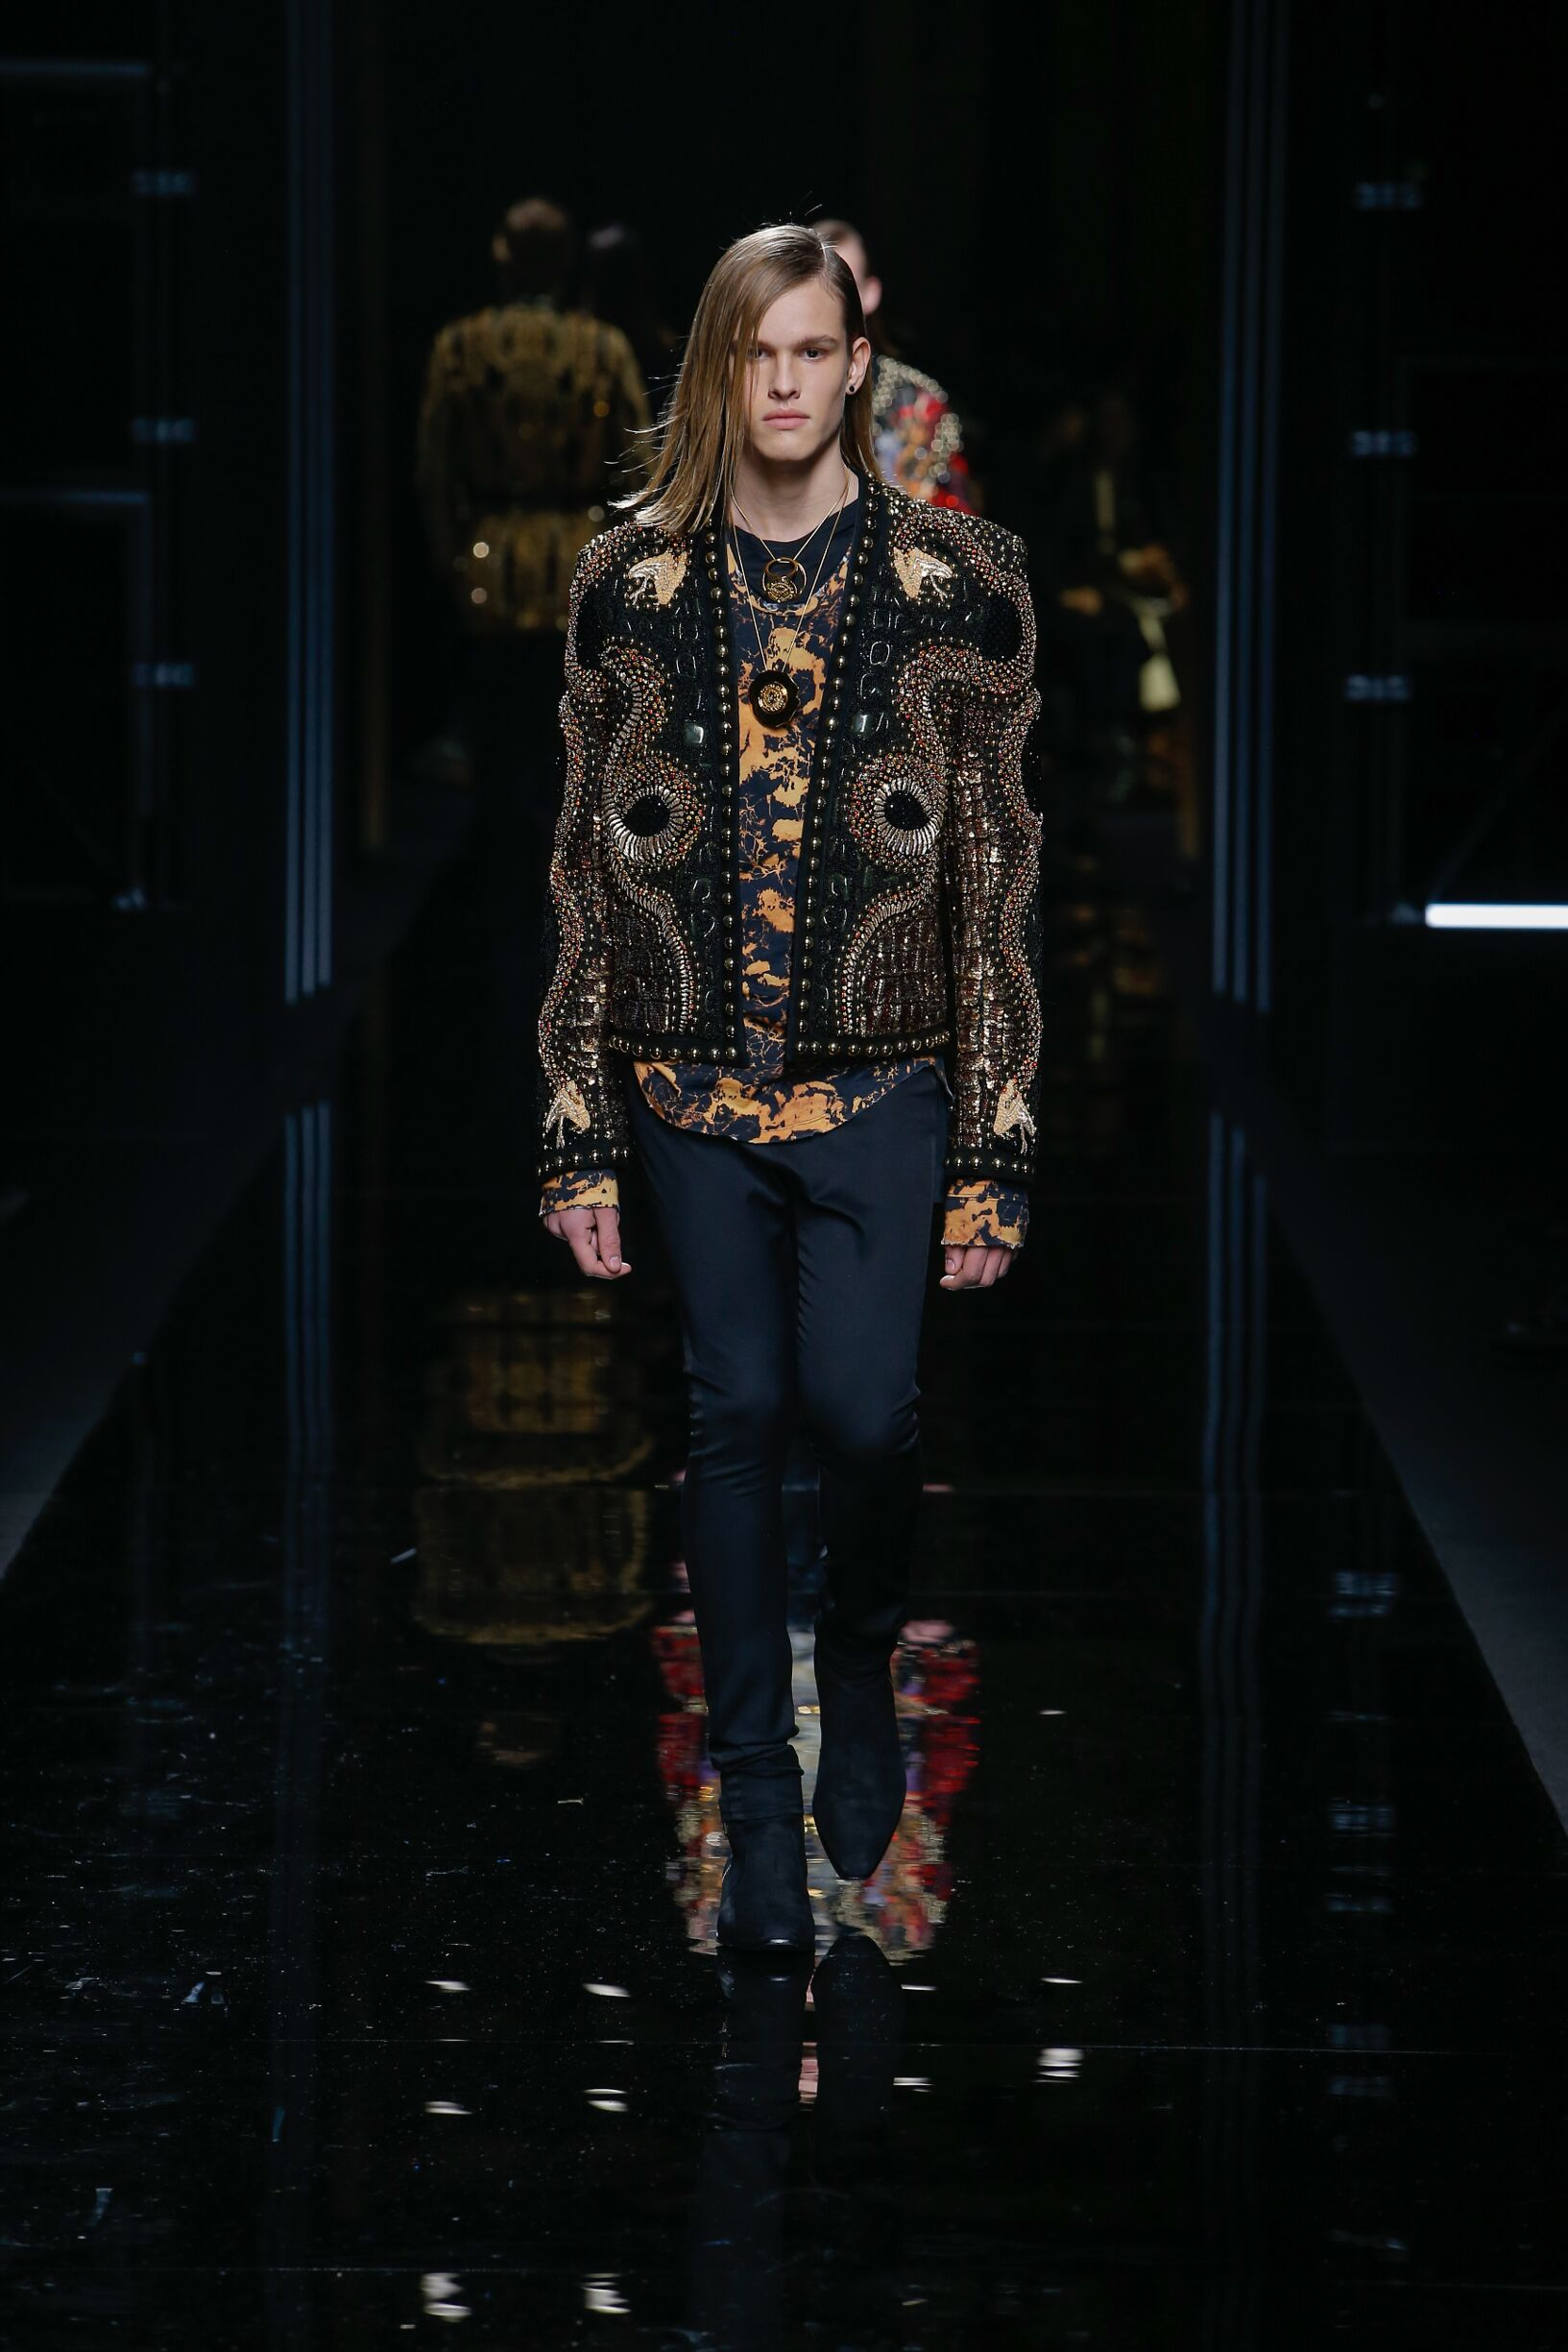 Man 2017-18 Balmain Winter Catwalk